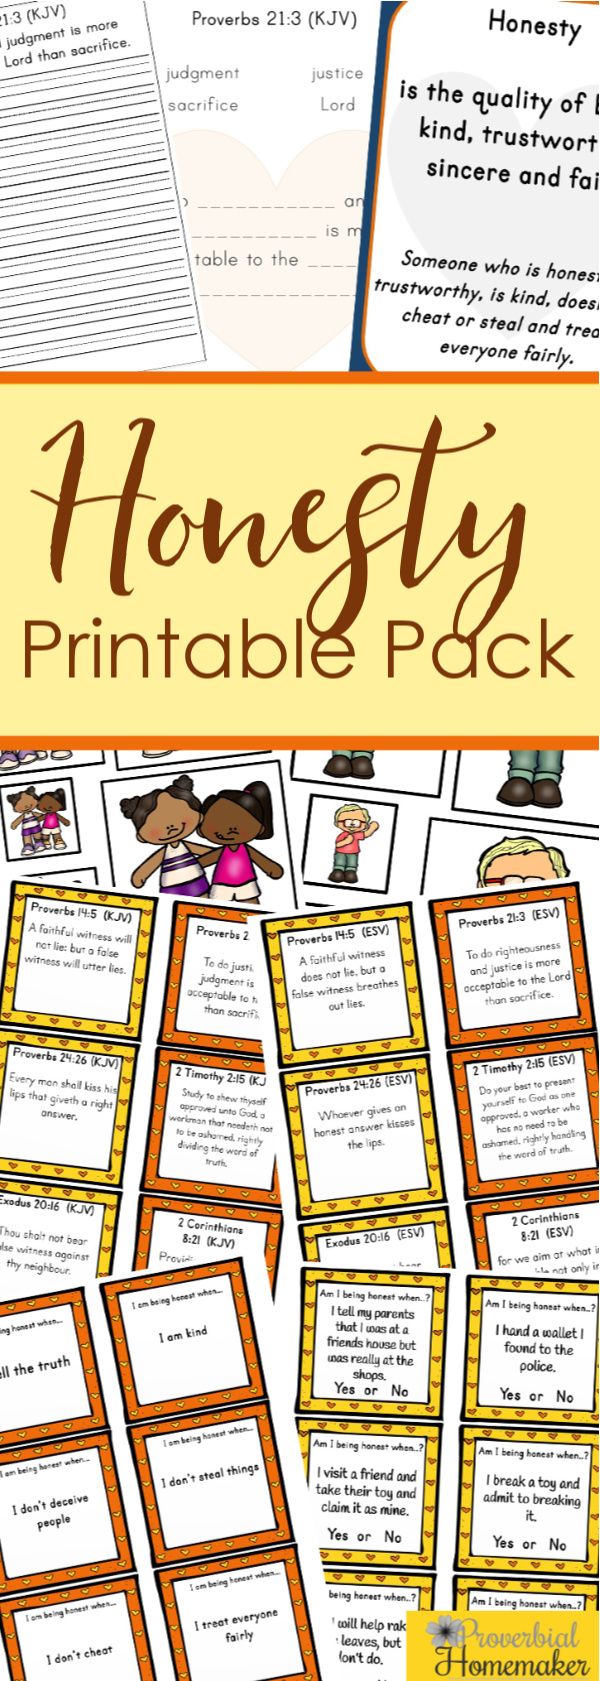 Download the Honesty Printable Pack to teach kids honesty with these biblical activities and stories! Includes scripture, writing/discussion prompts, puzzles, and more!